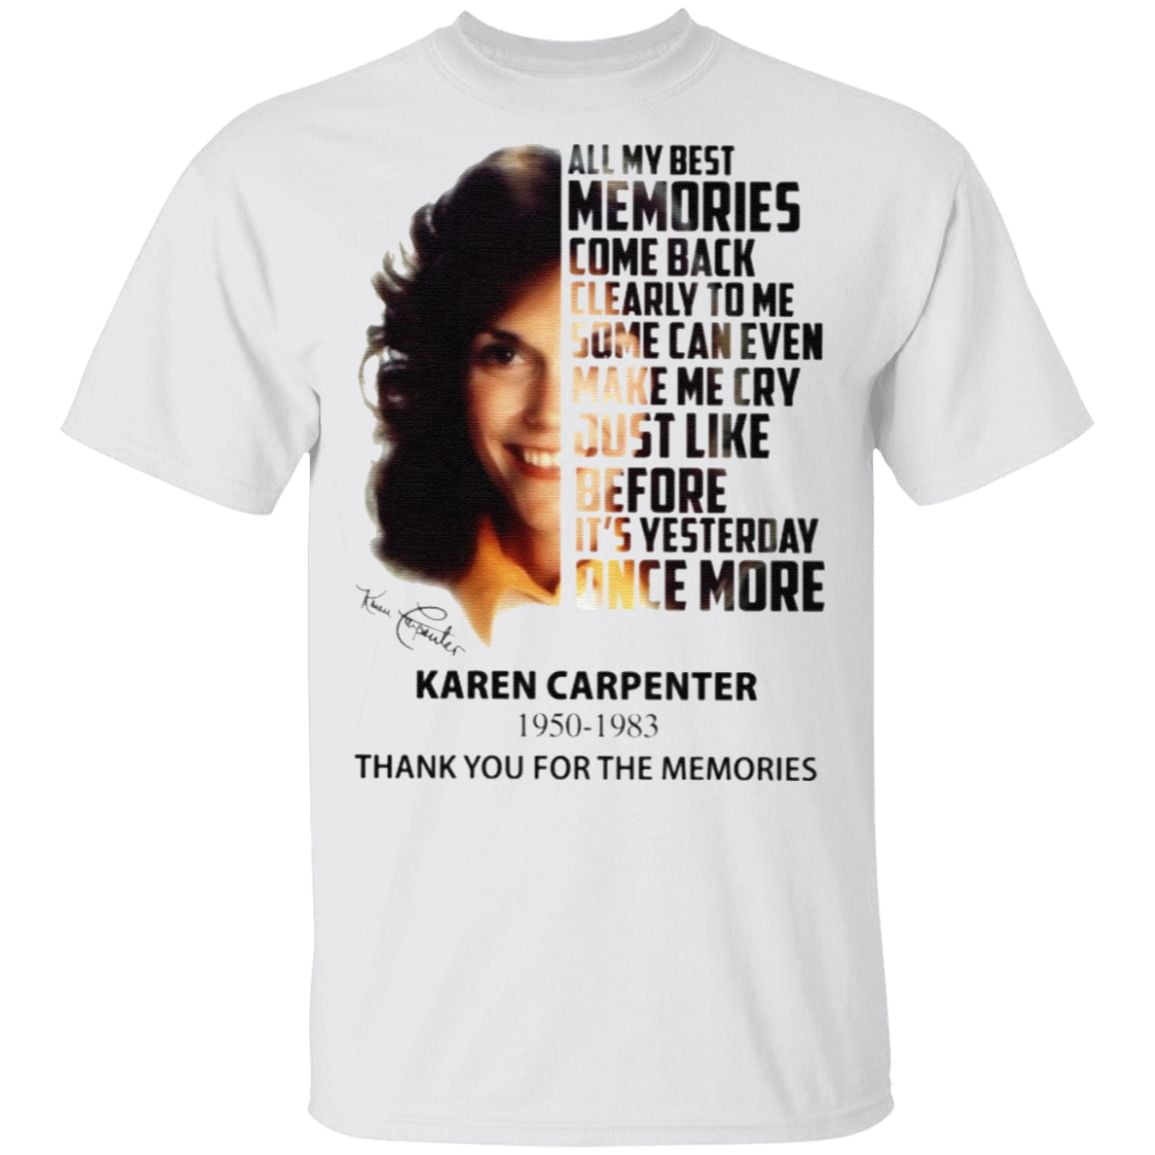 Karen Carpenter 1950-1983 All My Best Memories Come Back Clearly To Me Some Can Even Make Me Cry T Shirt